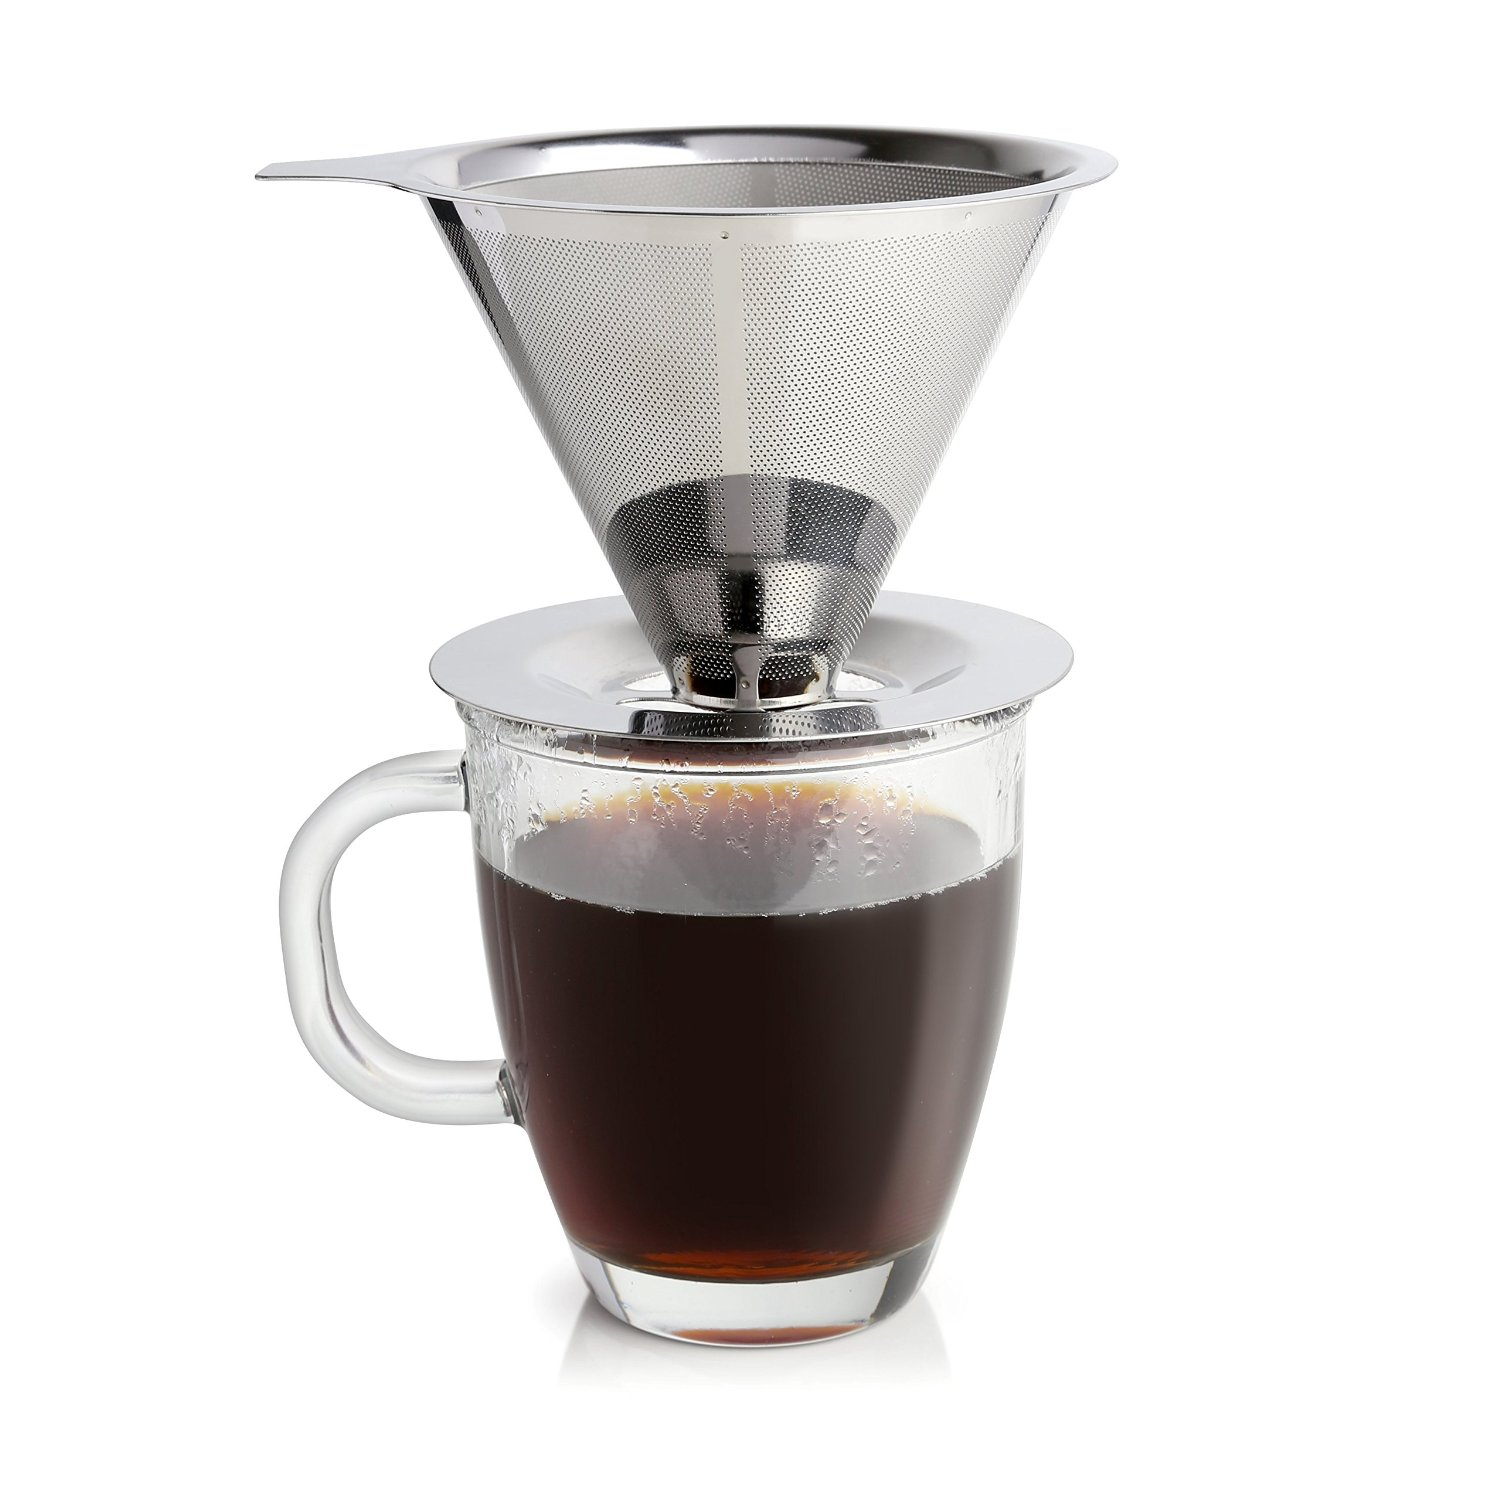 Paperless Coffee Filter